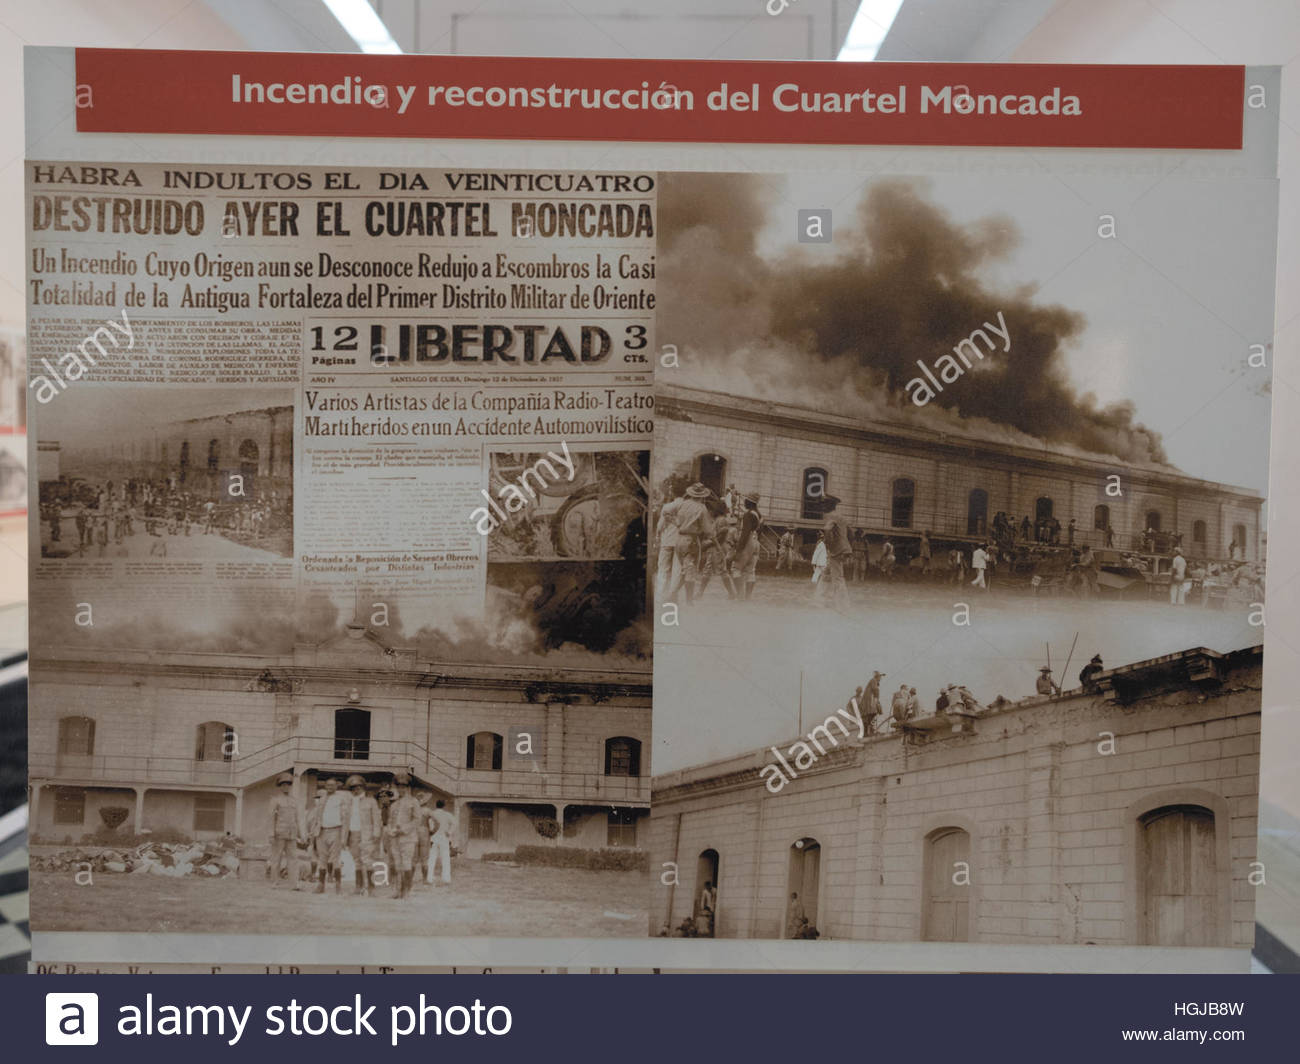 Cuban history: Old newspaper showing Moncada barracks on fire and reconstruction process. - Stock Image